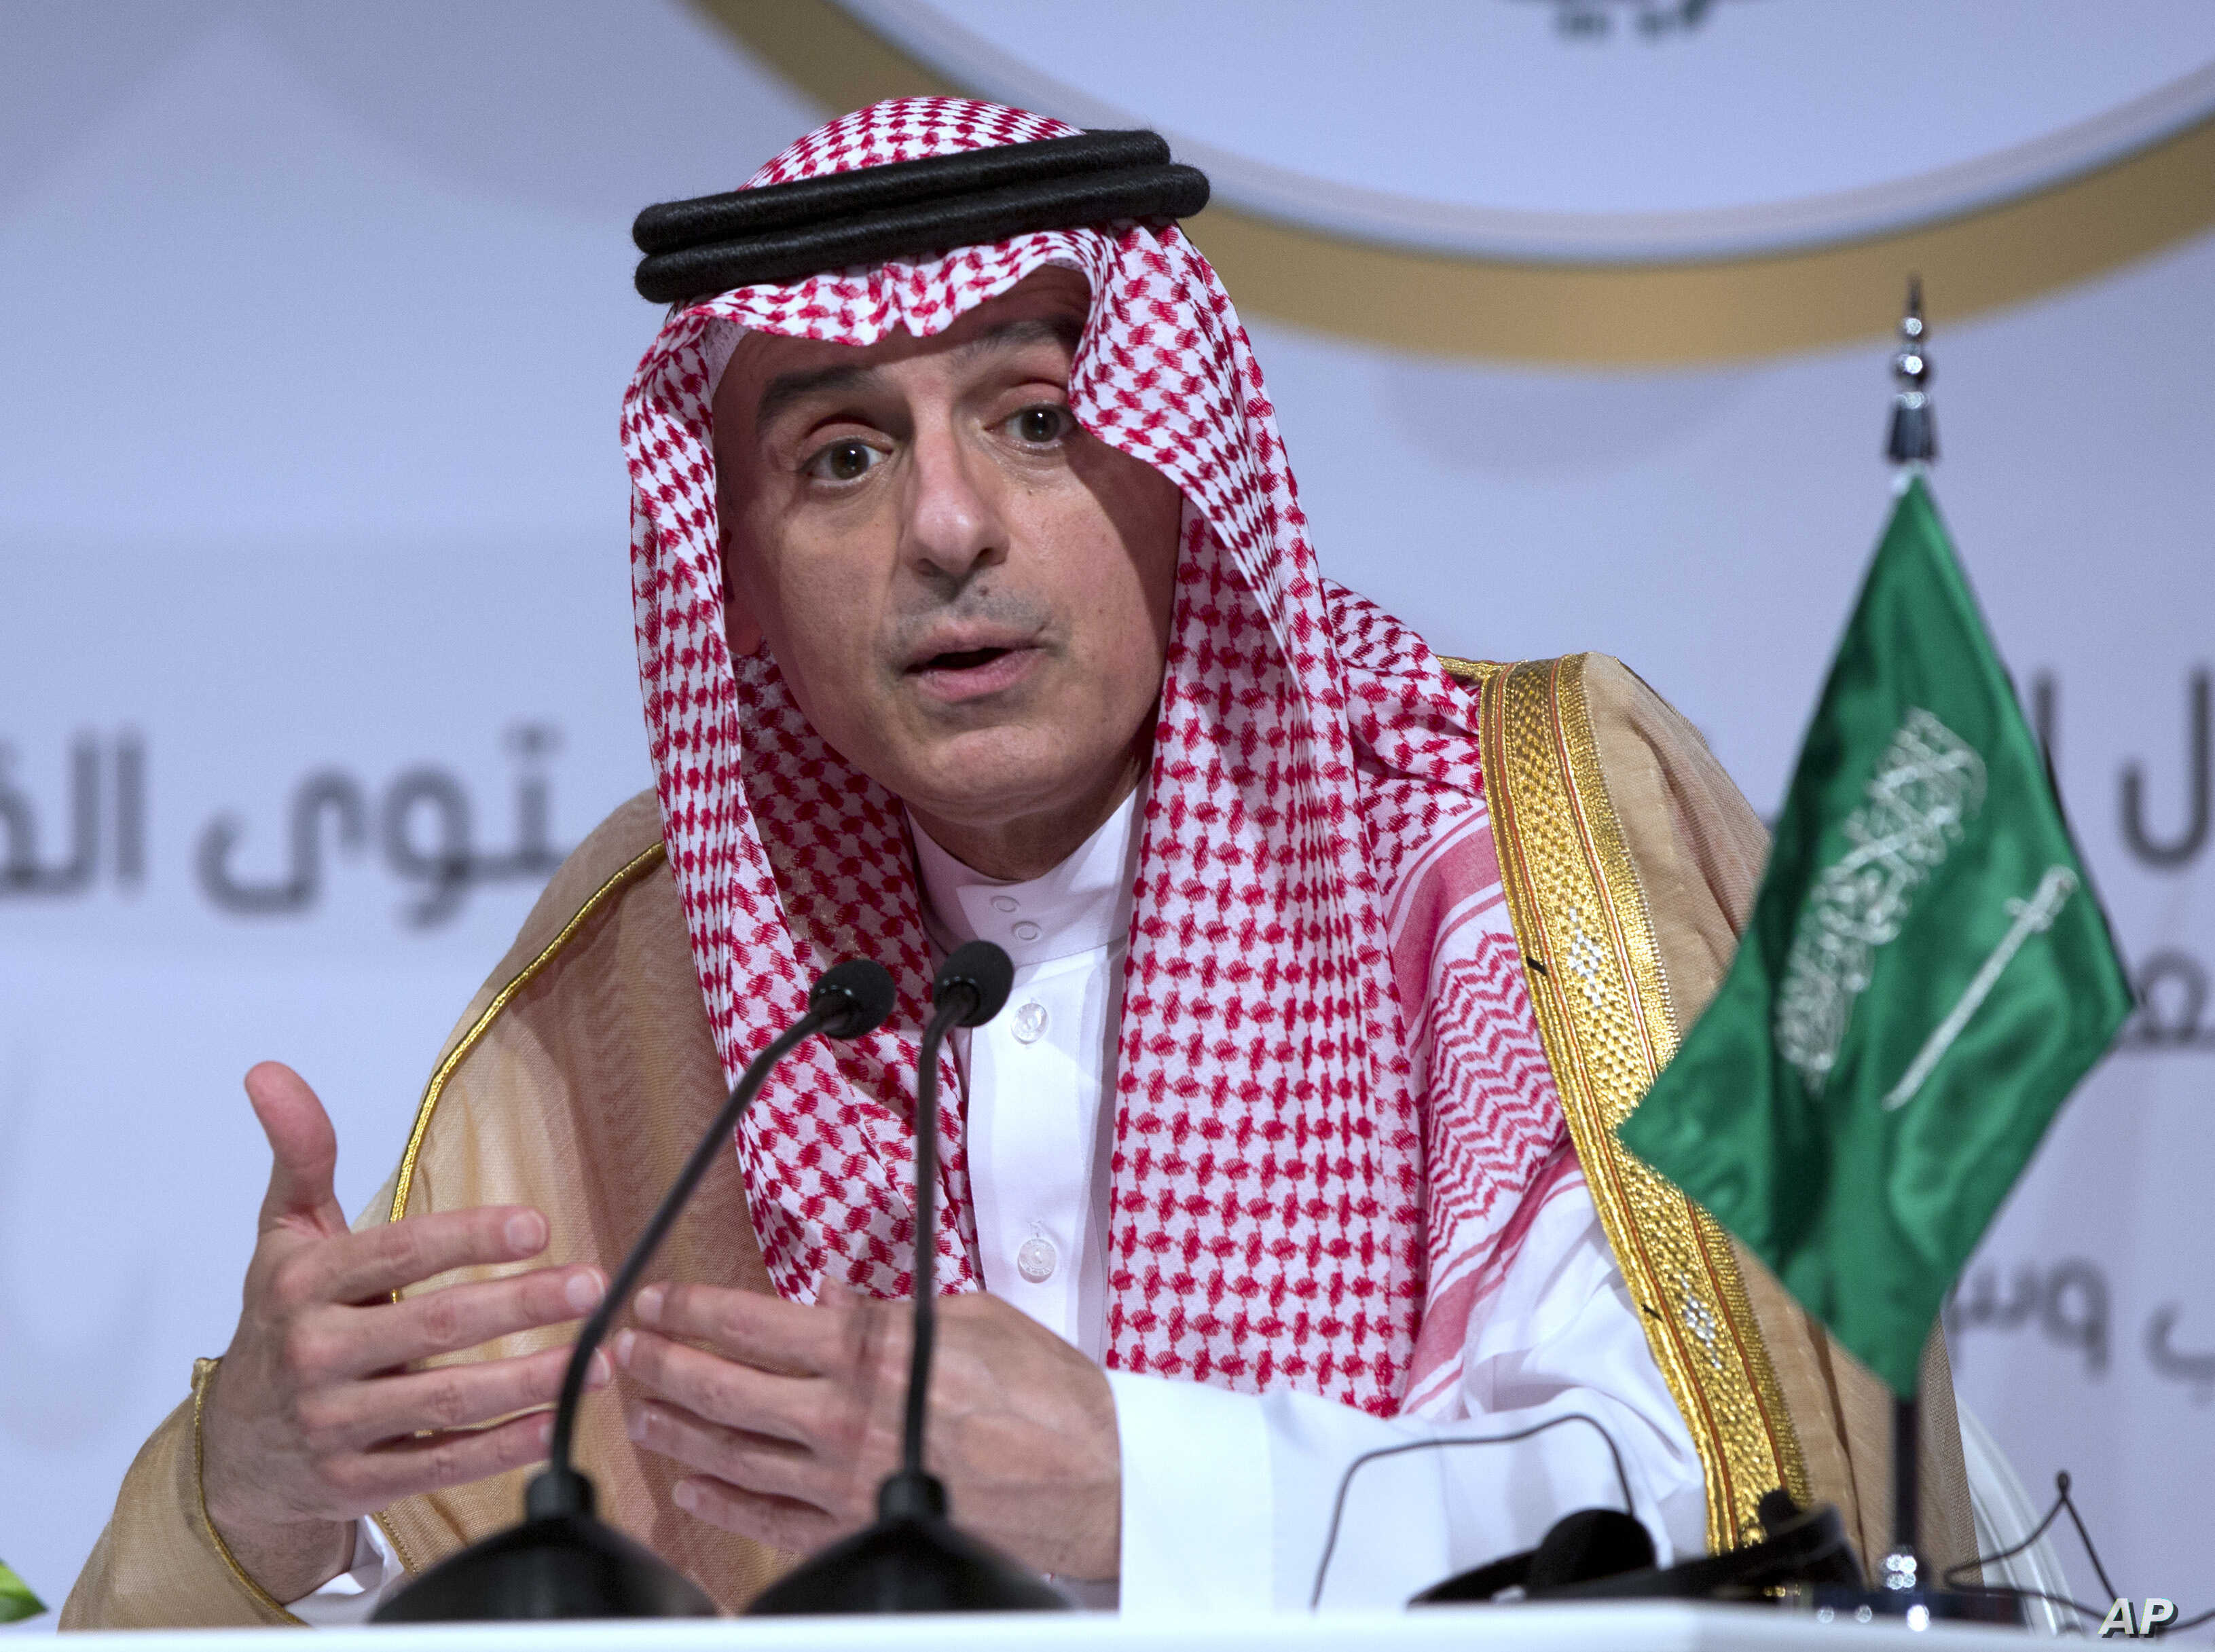 Saudi Arabi's Foreign Minister Adel al-Jubeir speaks during a press conference at the end of the Arab summit in Dhahran, April 15, 2018.